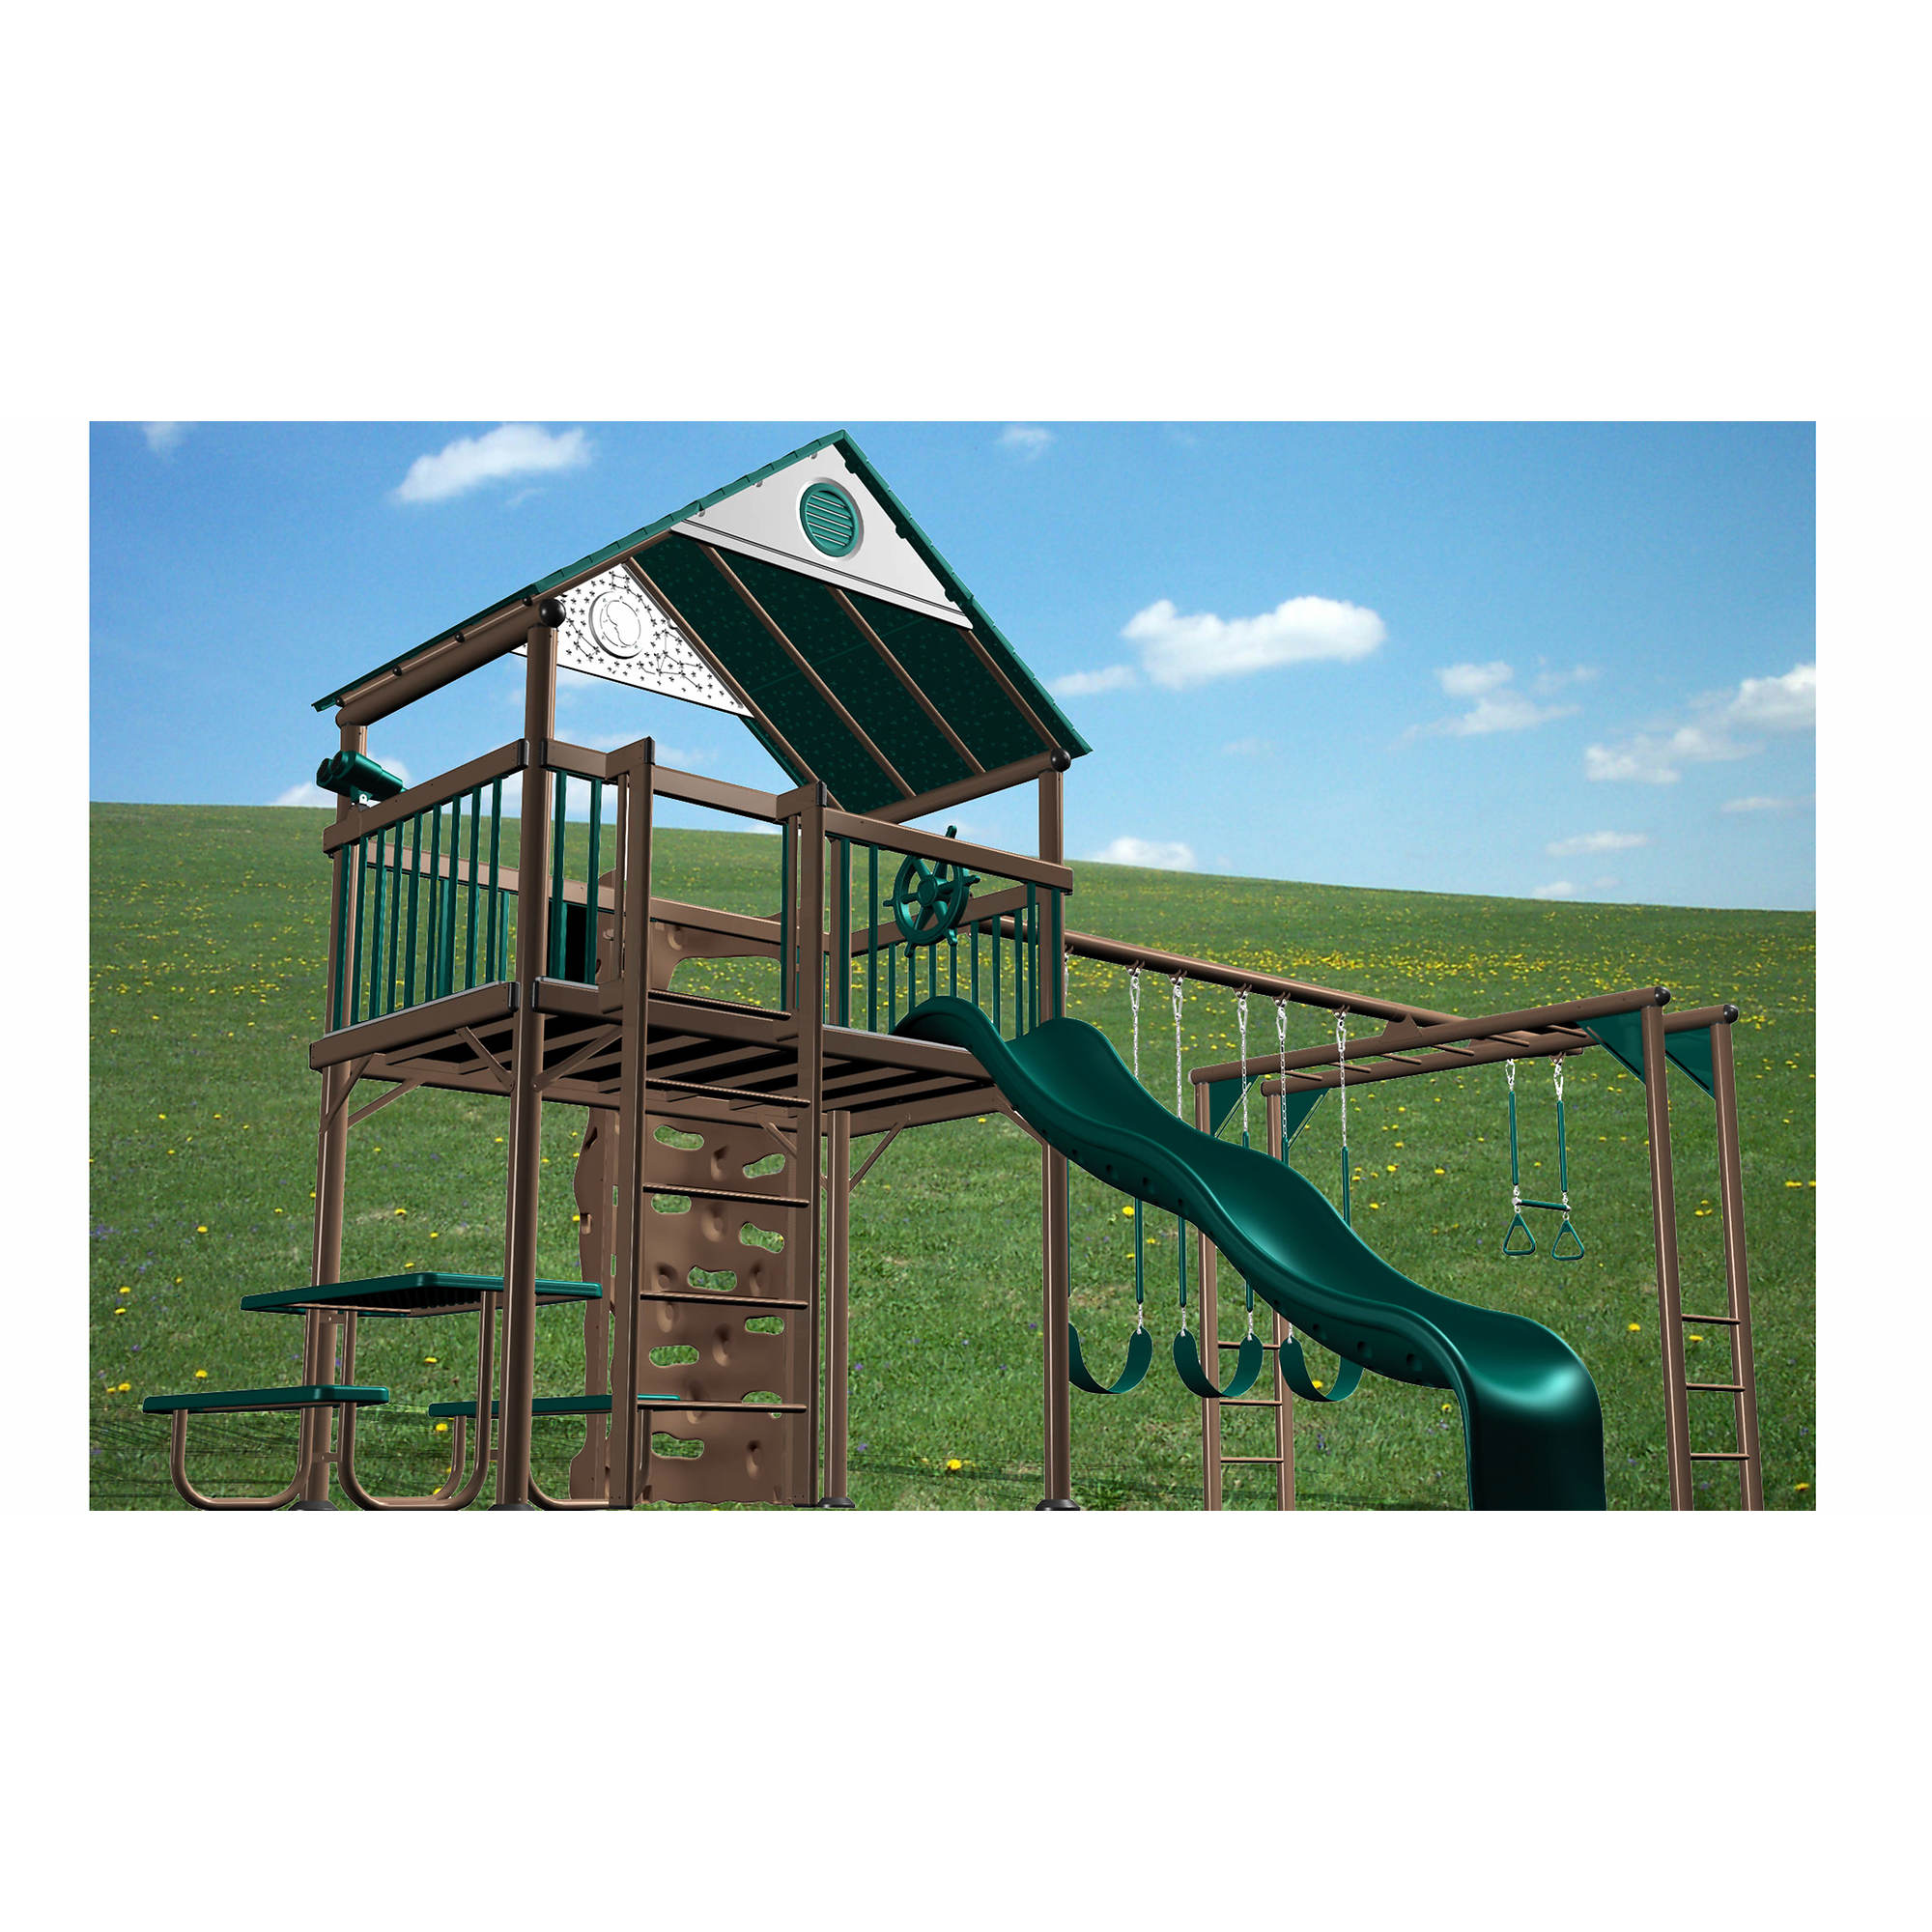 triumph the mount depot discovery n set b playsets equipment home backyard sets playground swing cedar lifetime all